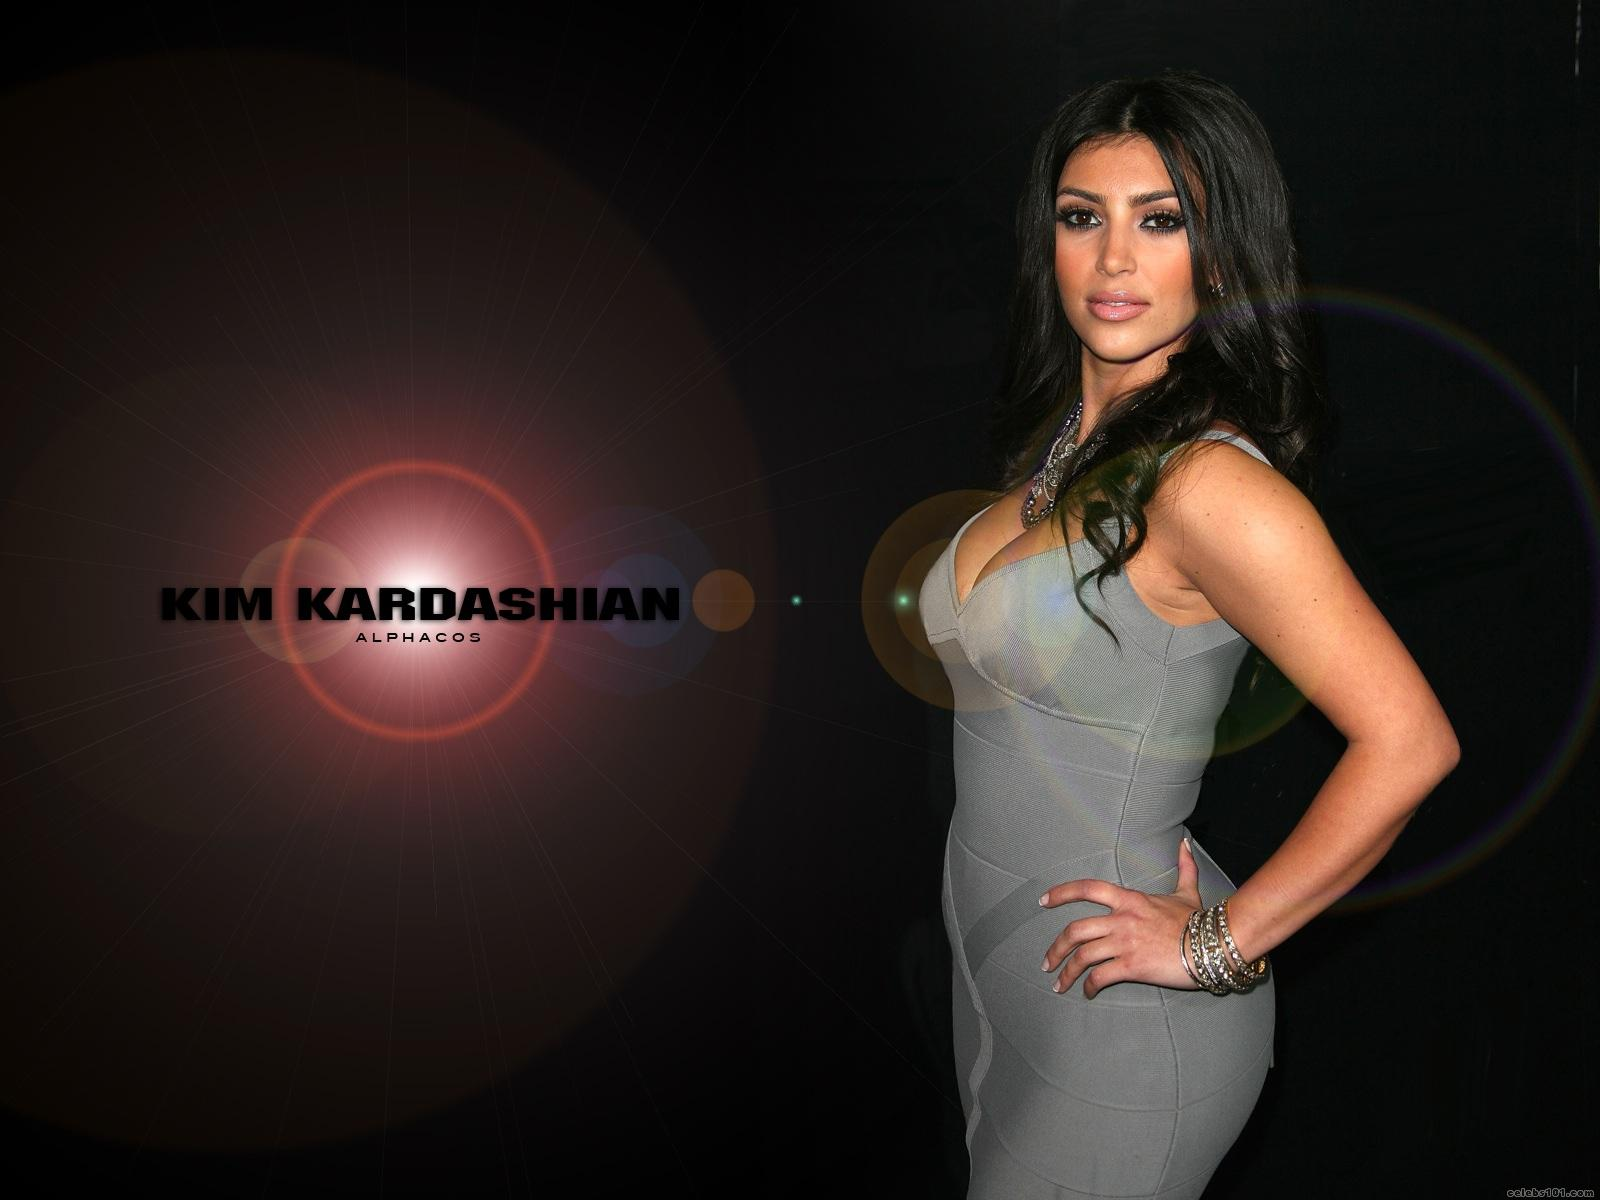 Kim Kardashian Wallpapers